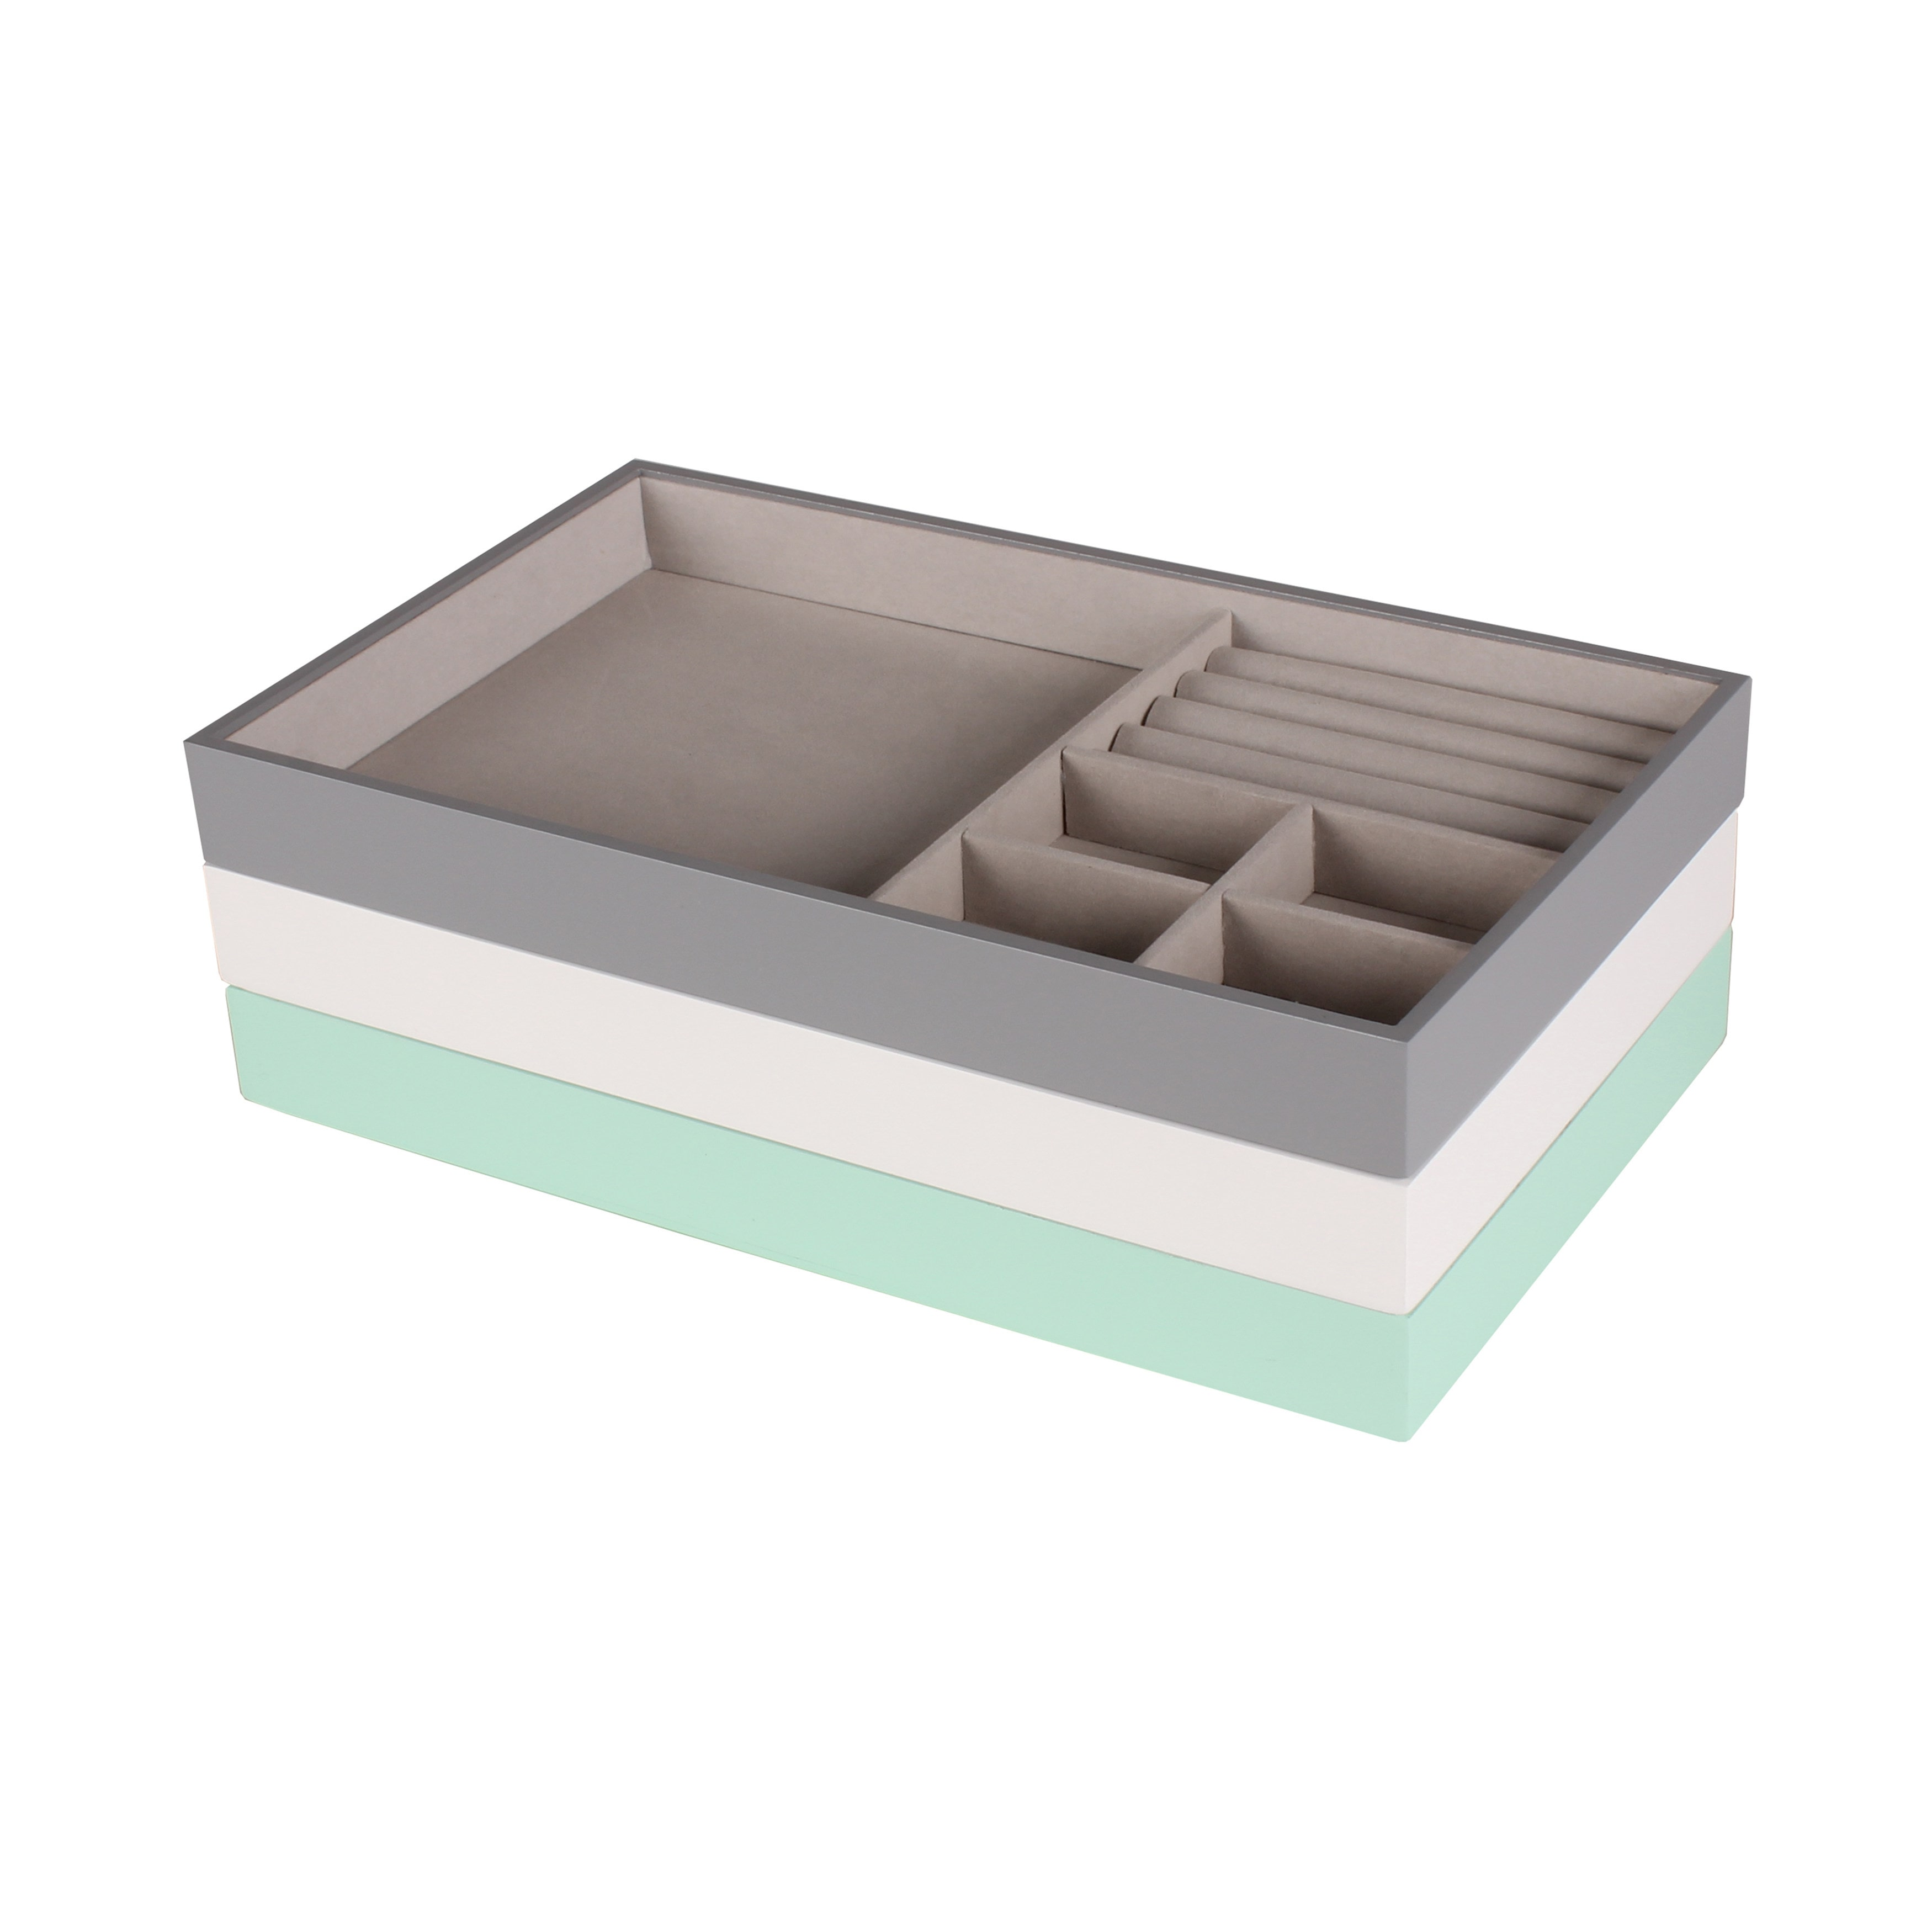 Vanity Organizer / Mint, Gray, and White Myrcella Jewelry Storage Stackable Trays, Set of 3 0